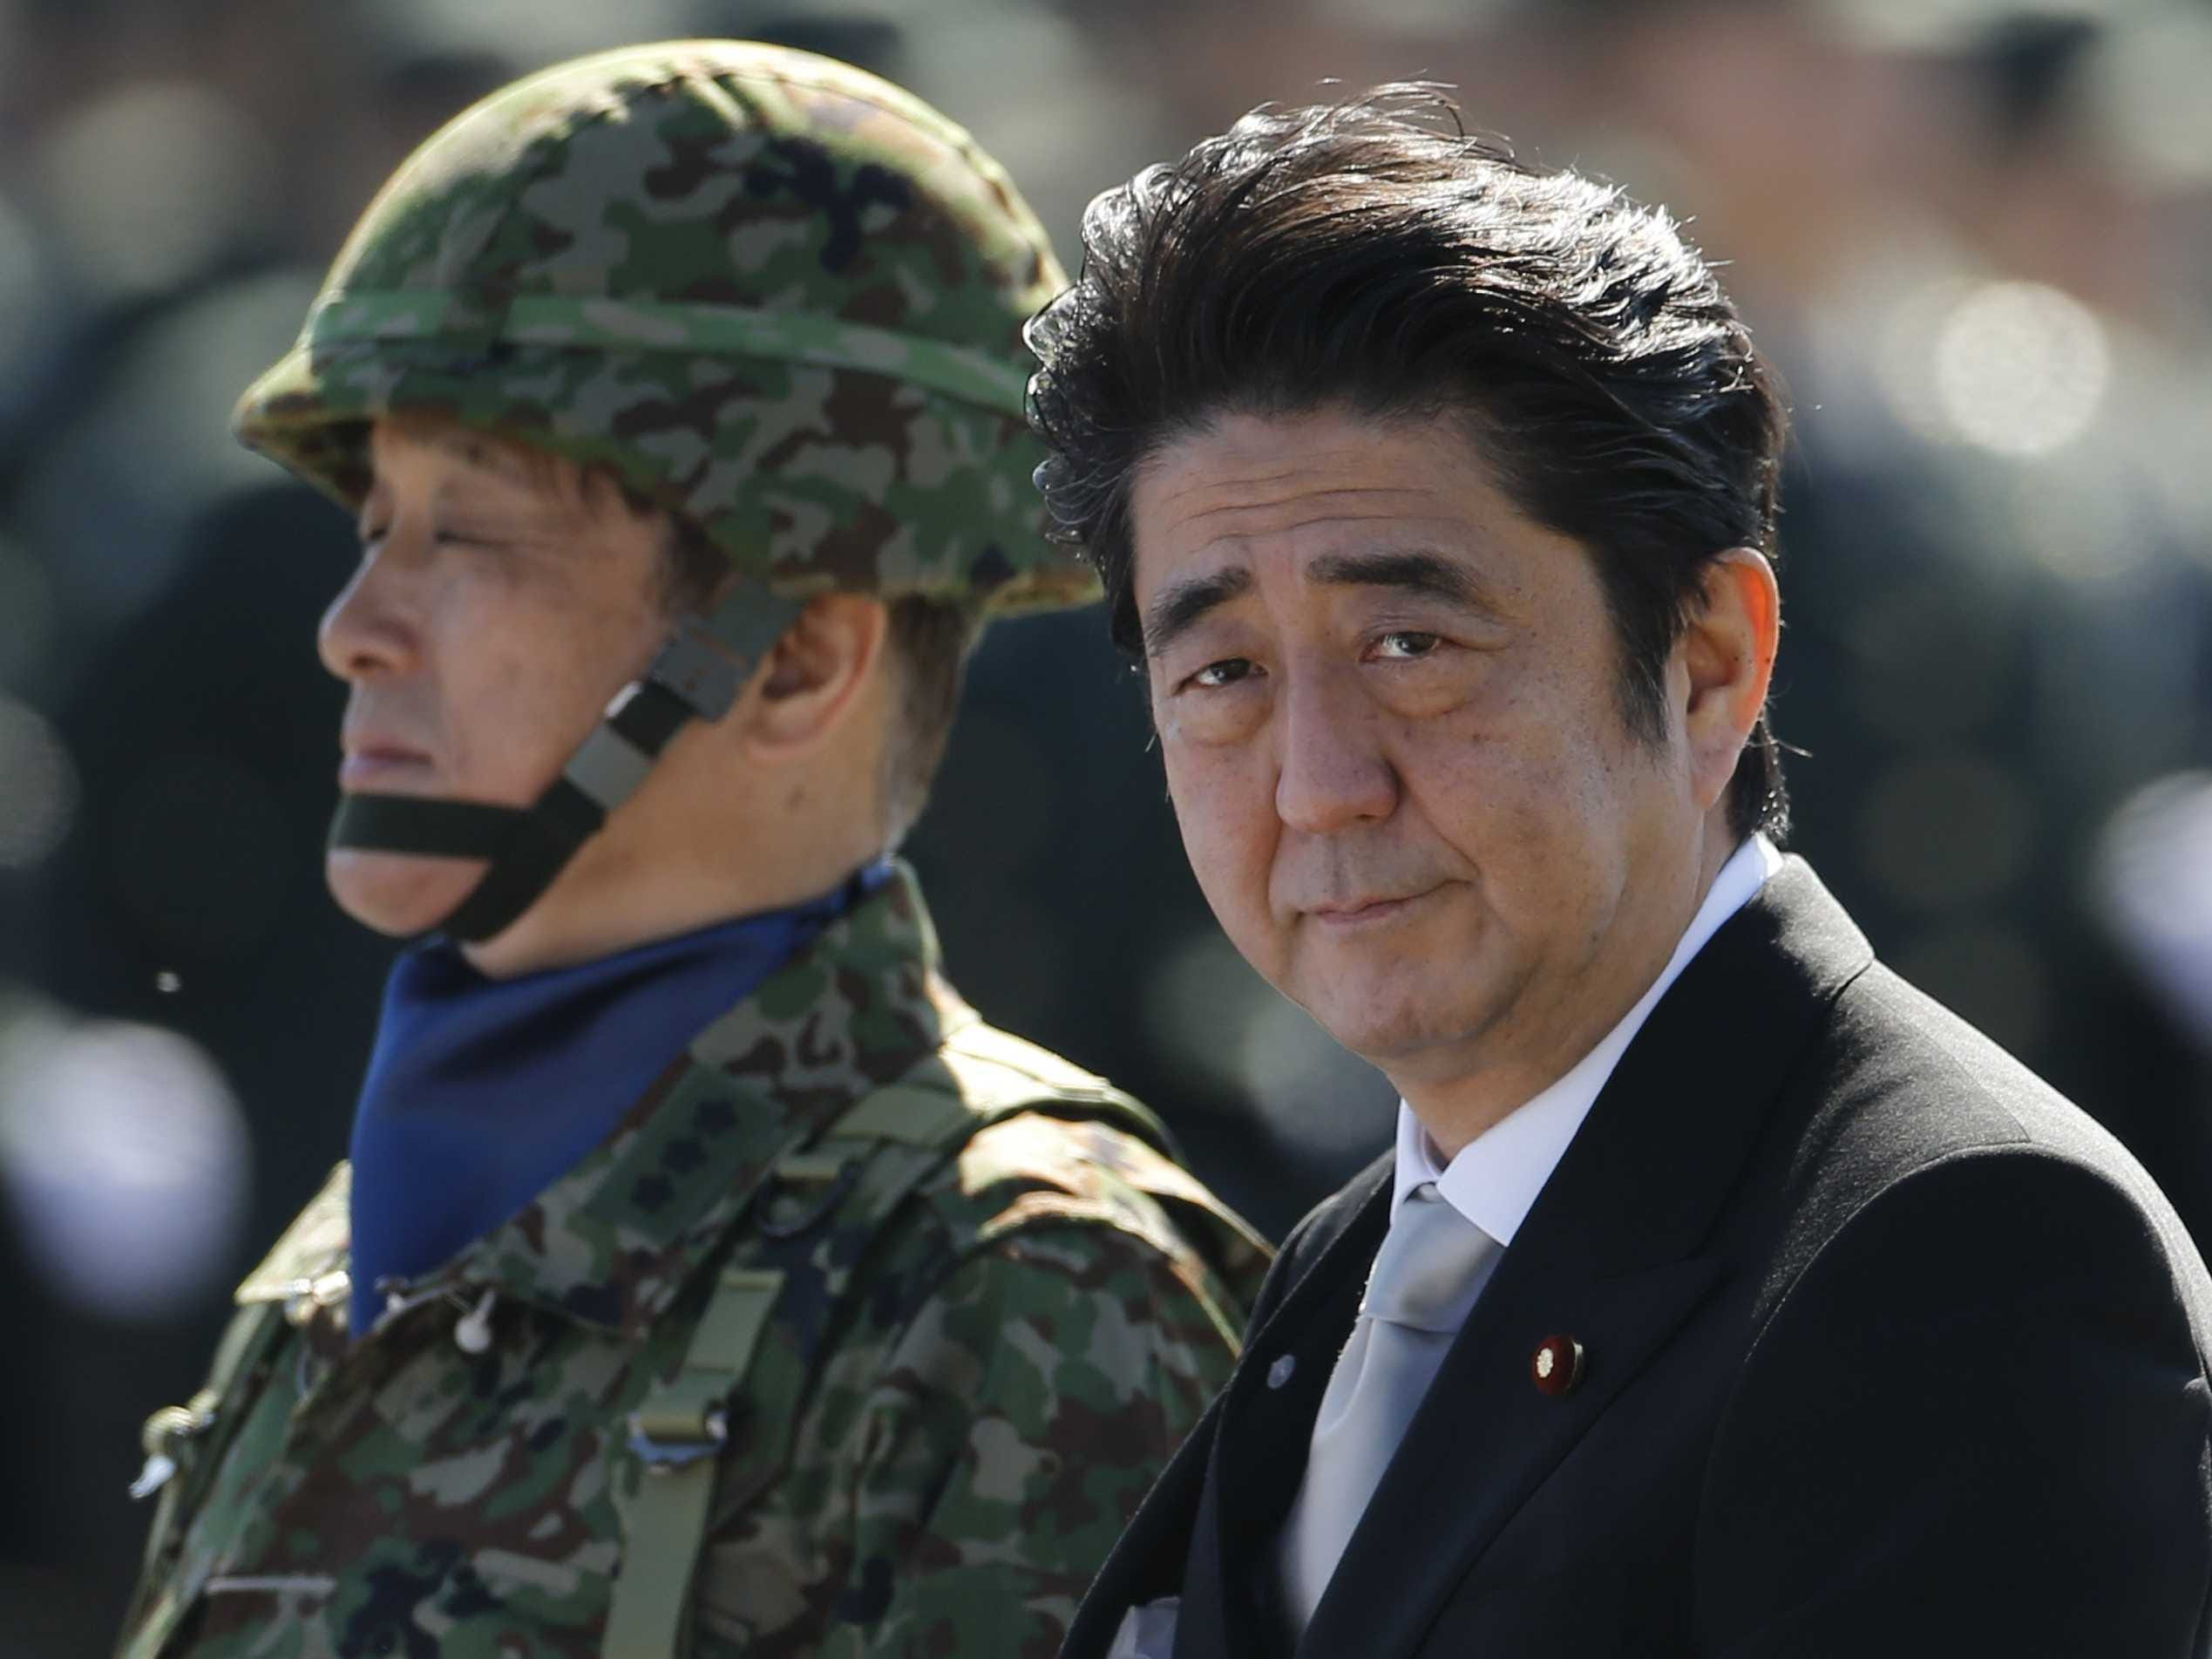 Image result for Prime Minister Shinzo Abe military photos